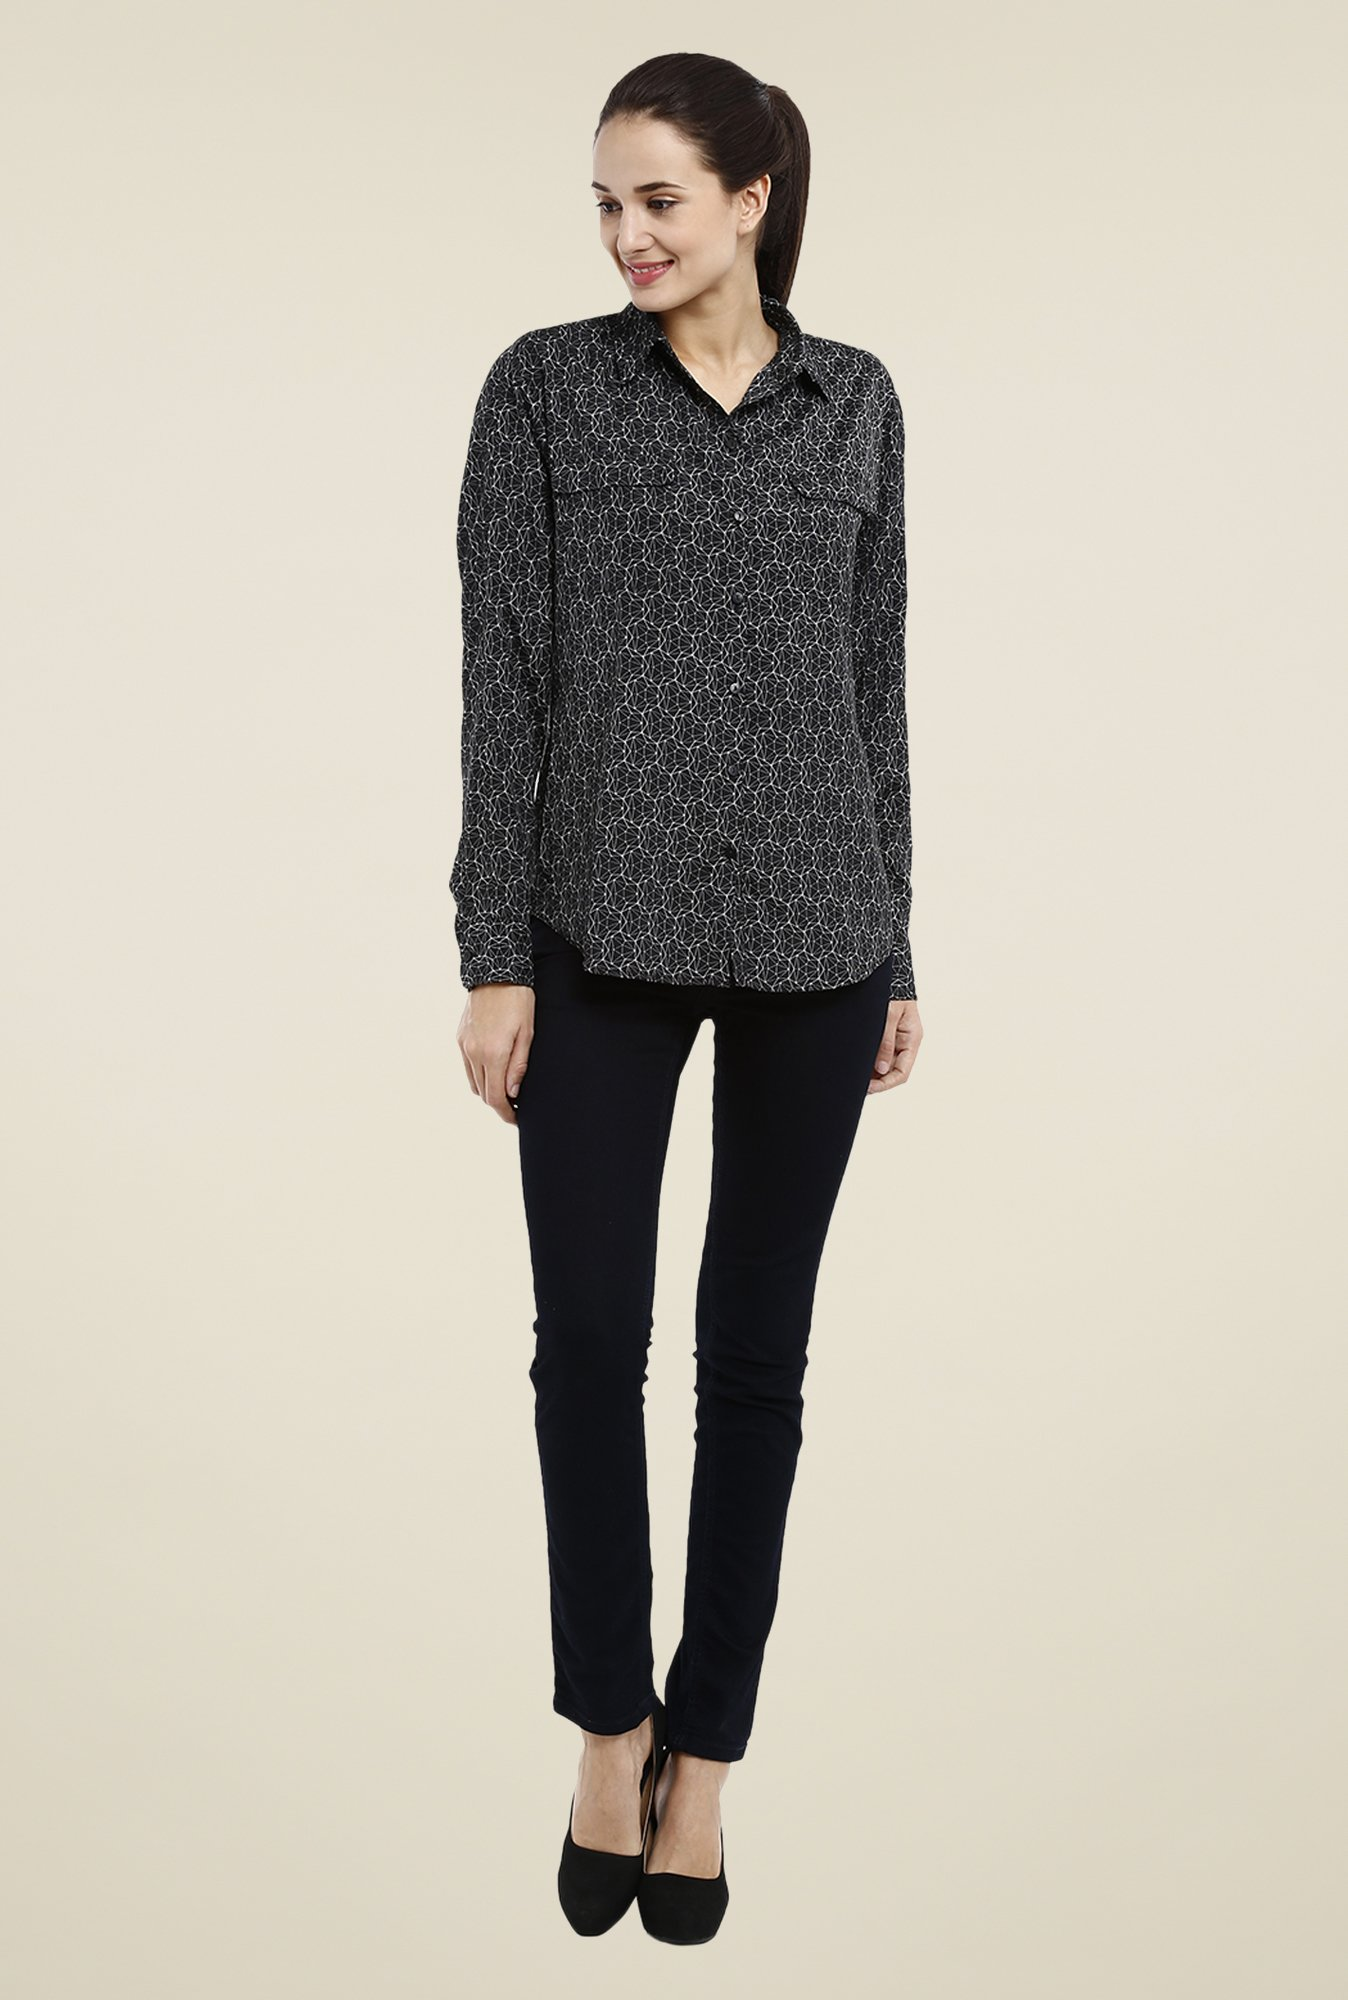 Avirate Black Printed Shirt